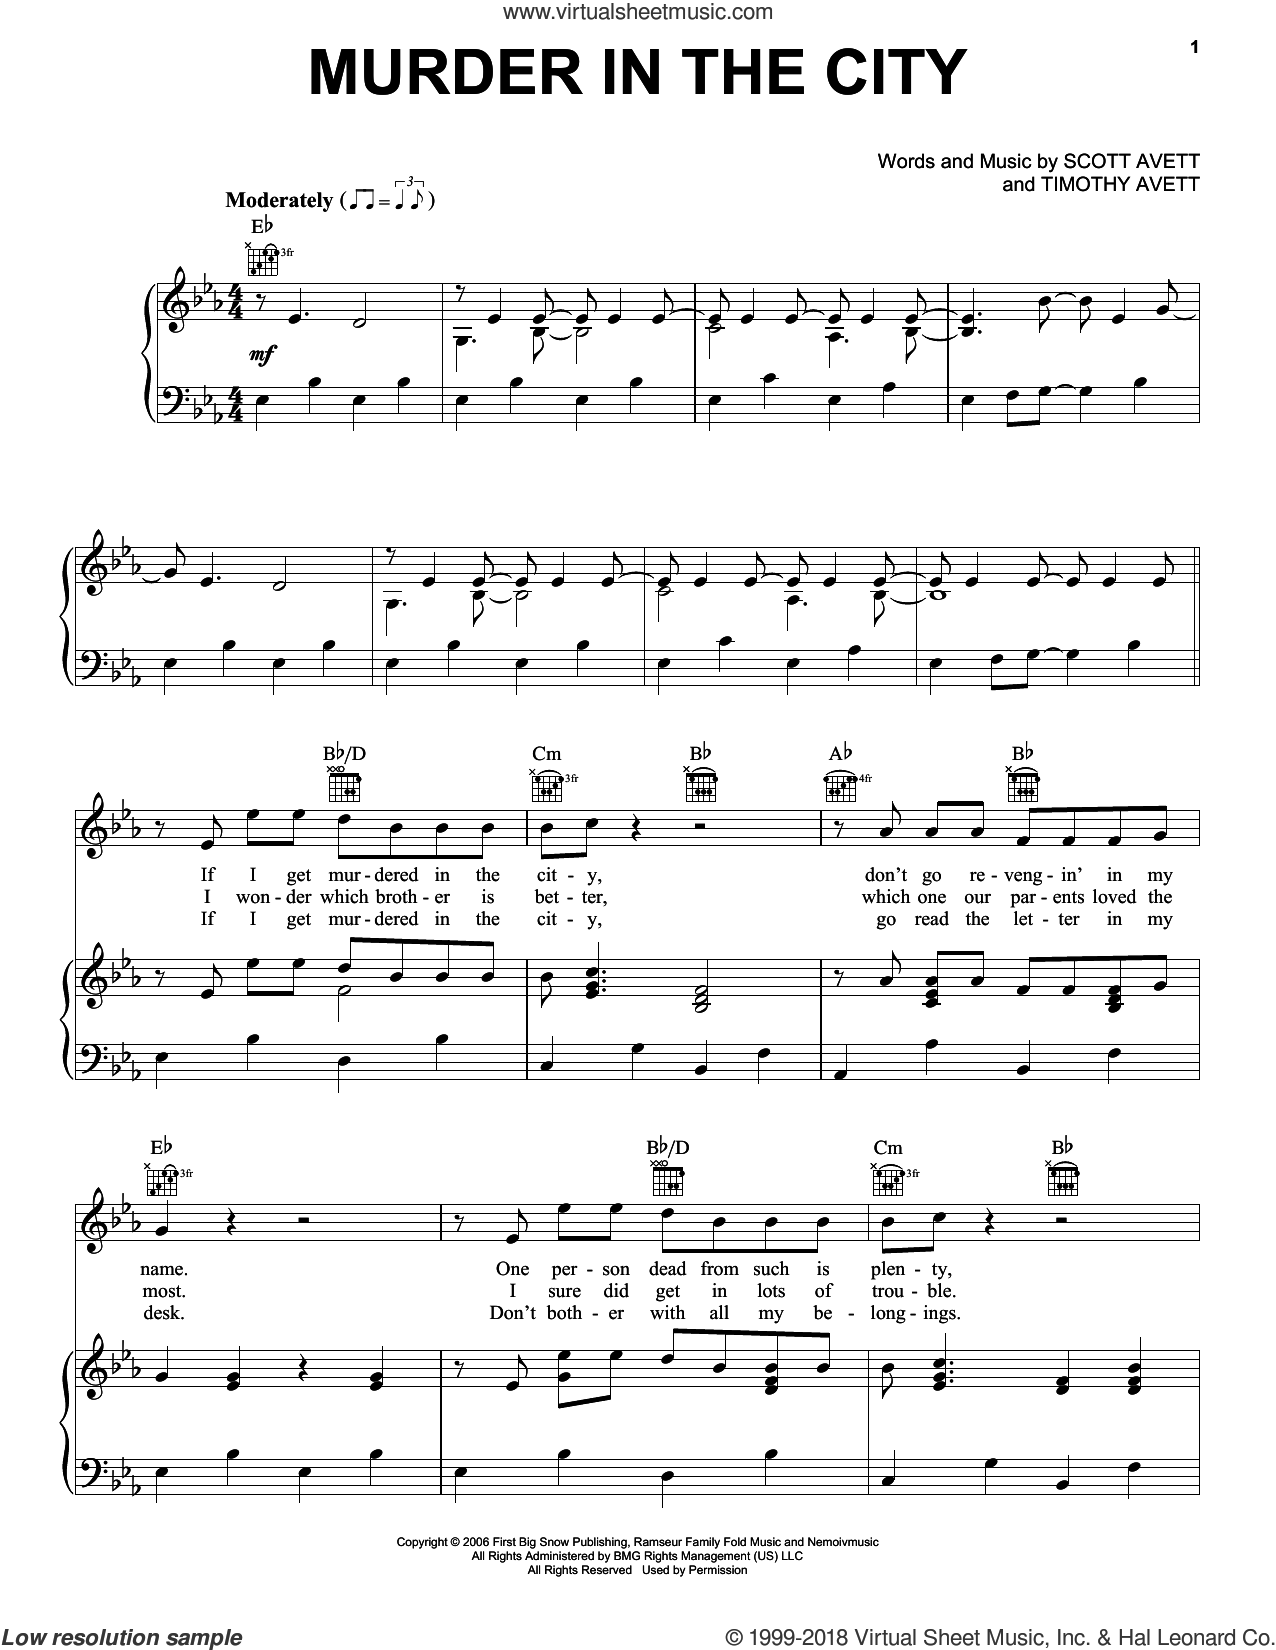 Murder In The City sheet music for voice, piano or guitar by Timothy Avett